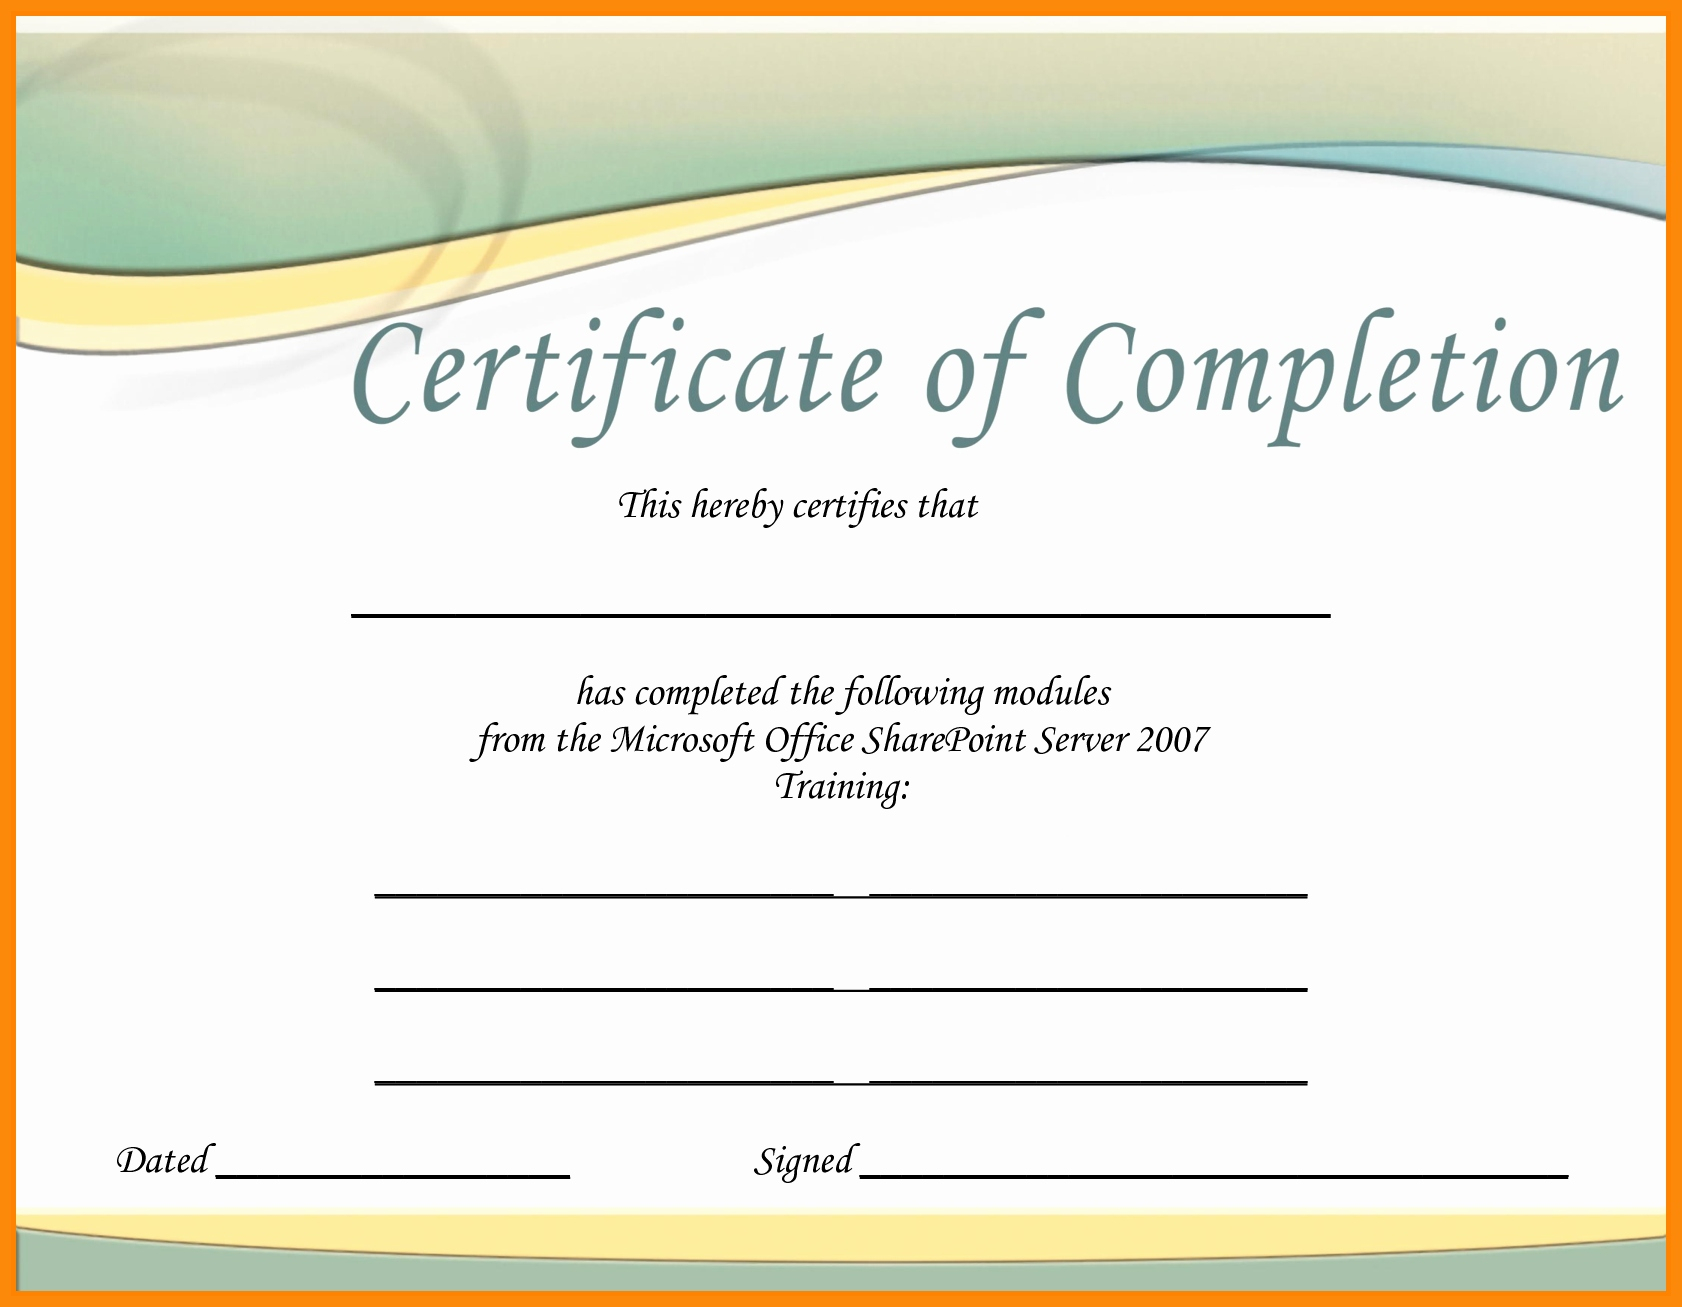 Certificate Template Archives - Atlantaauctionco Within Free Certificate Templates For Word 2007